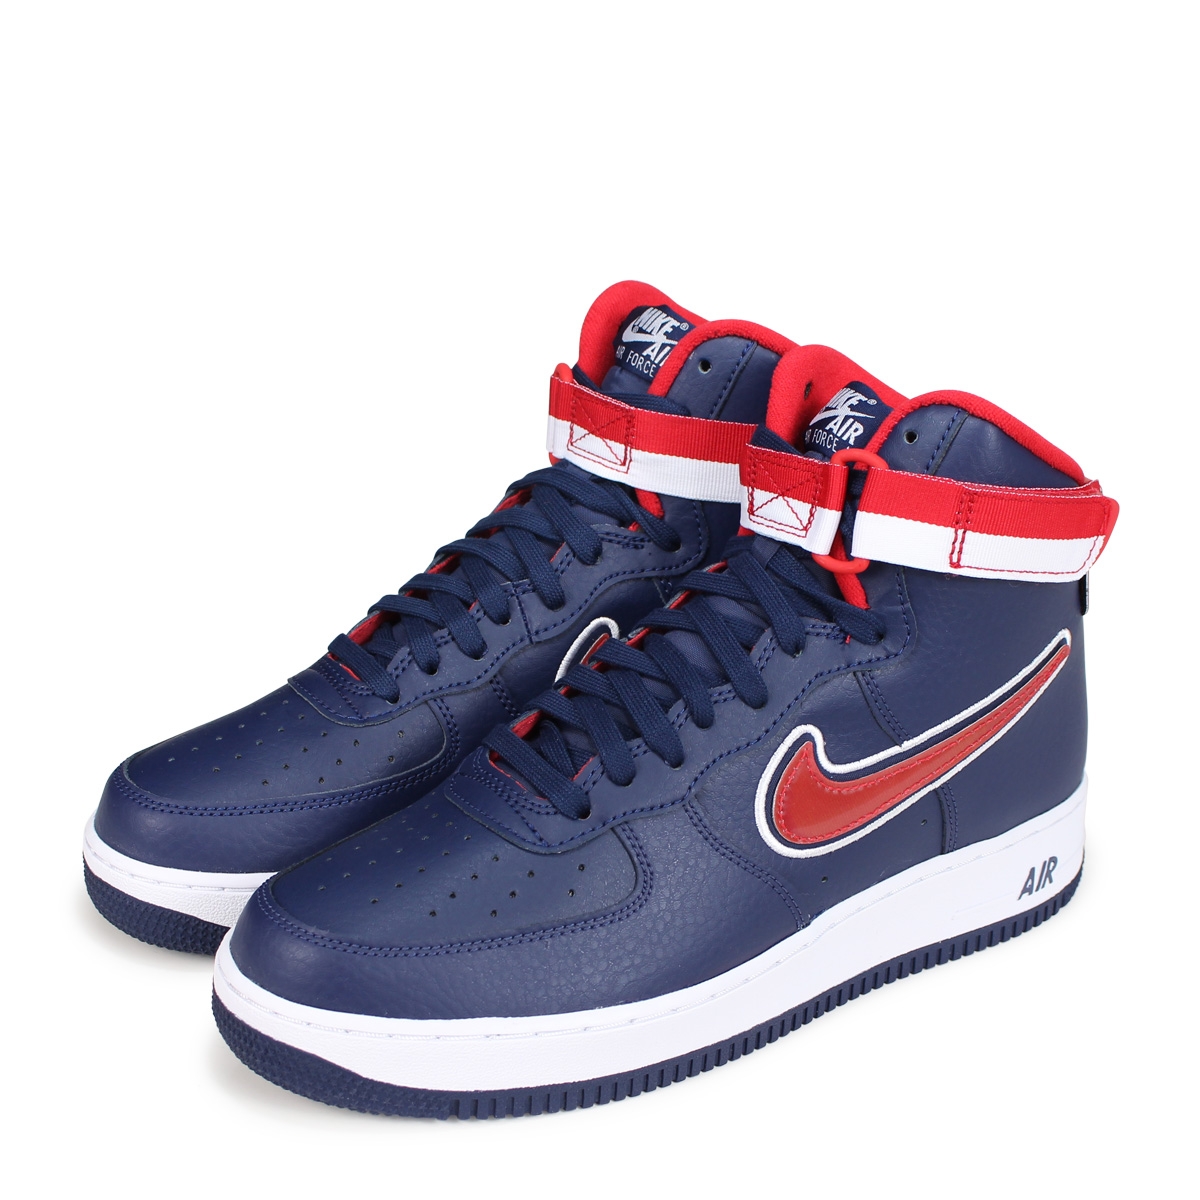 NIKE AIR FORCE 1 07 LV8 SPORT Nike air force 1 high sneakers men AV3938-400  navy [load planned Shinnyu load in reservation product 10/15 containing] ...